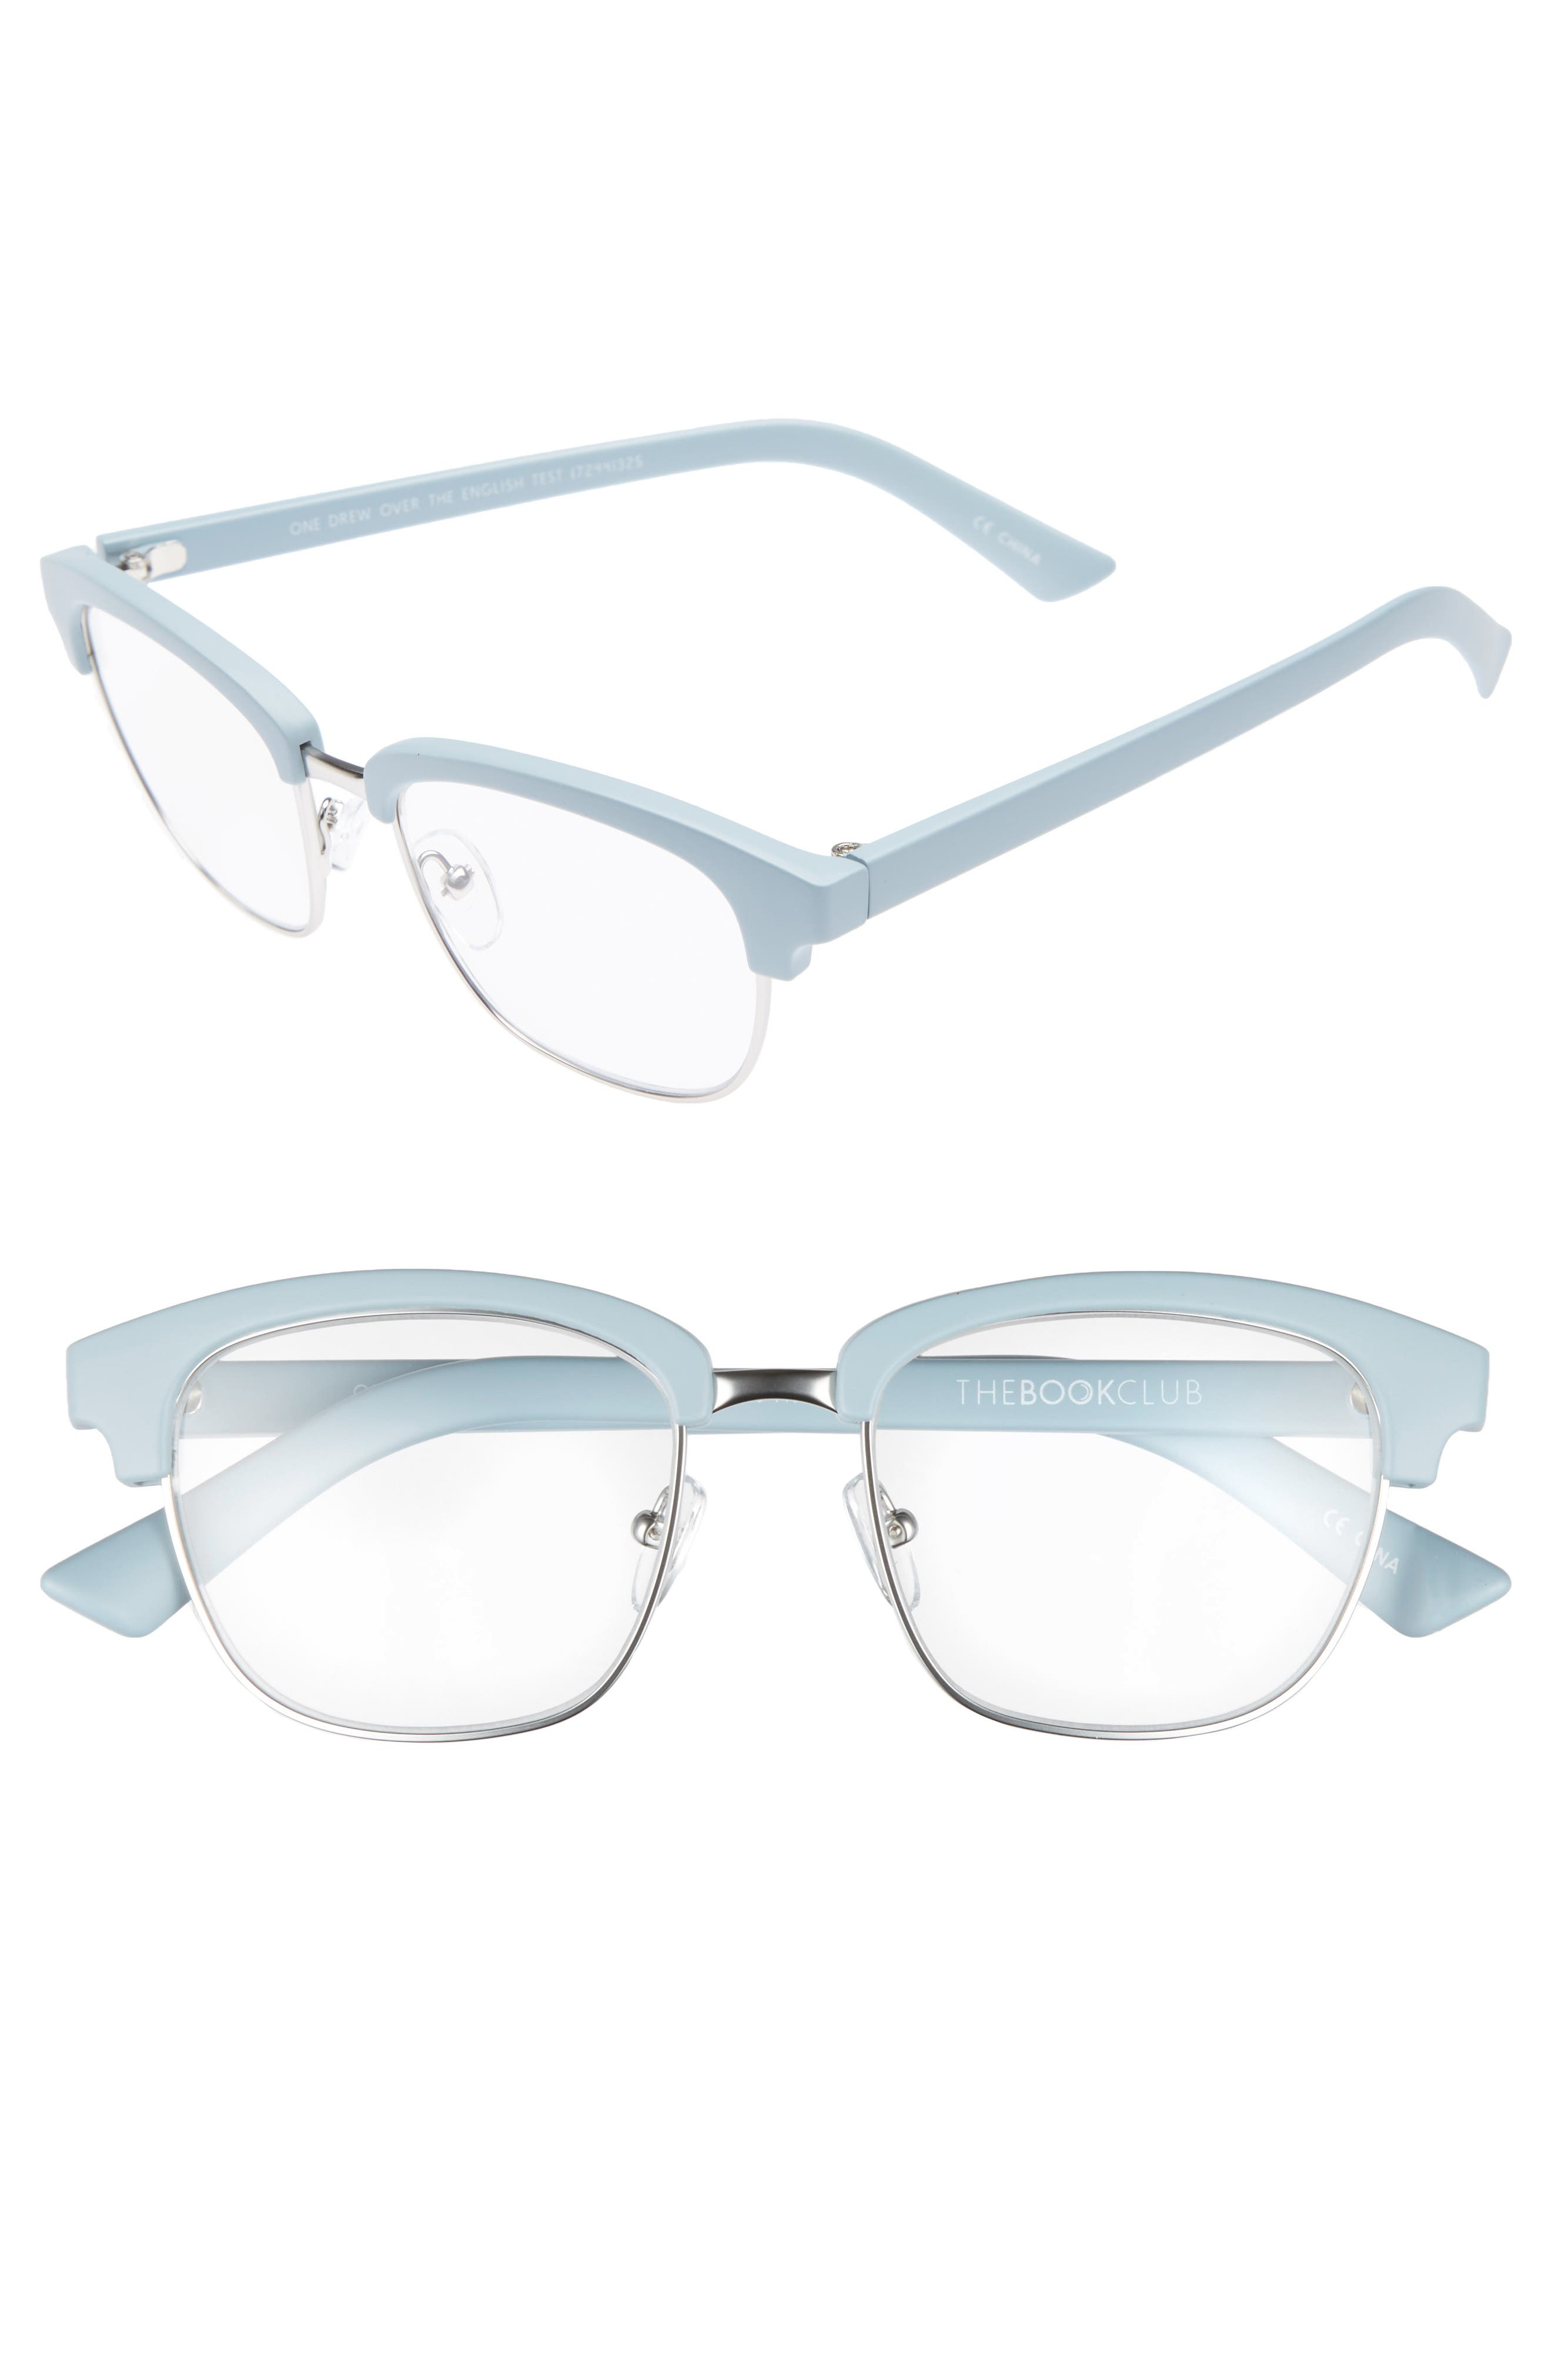 One Drew Over the English Test 52mm Reading Glasses,                             Main thumbnail 1, color,                             Sky/ Silver